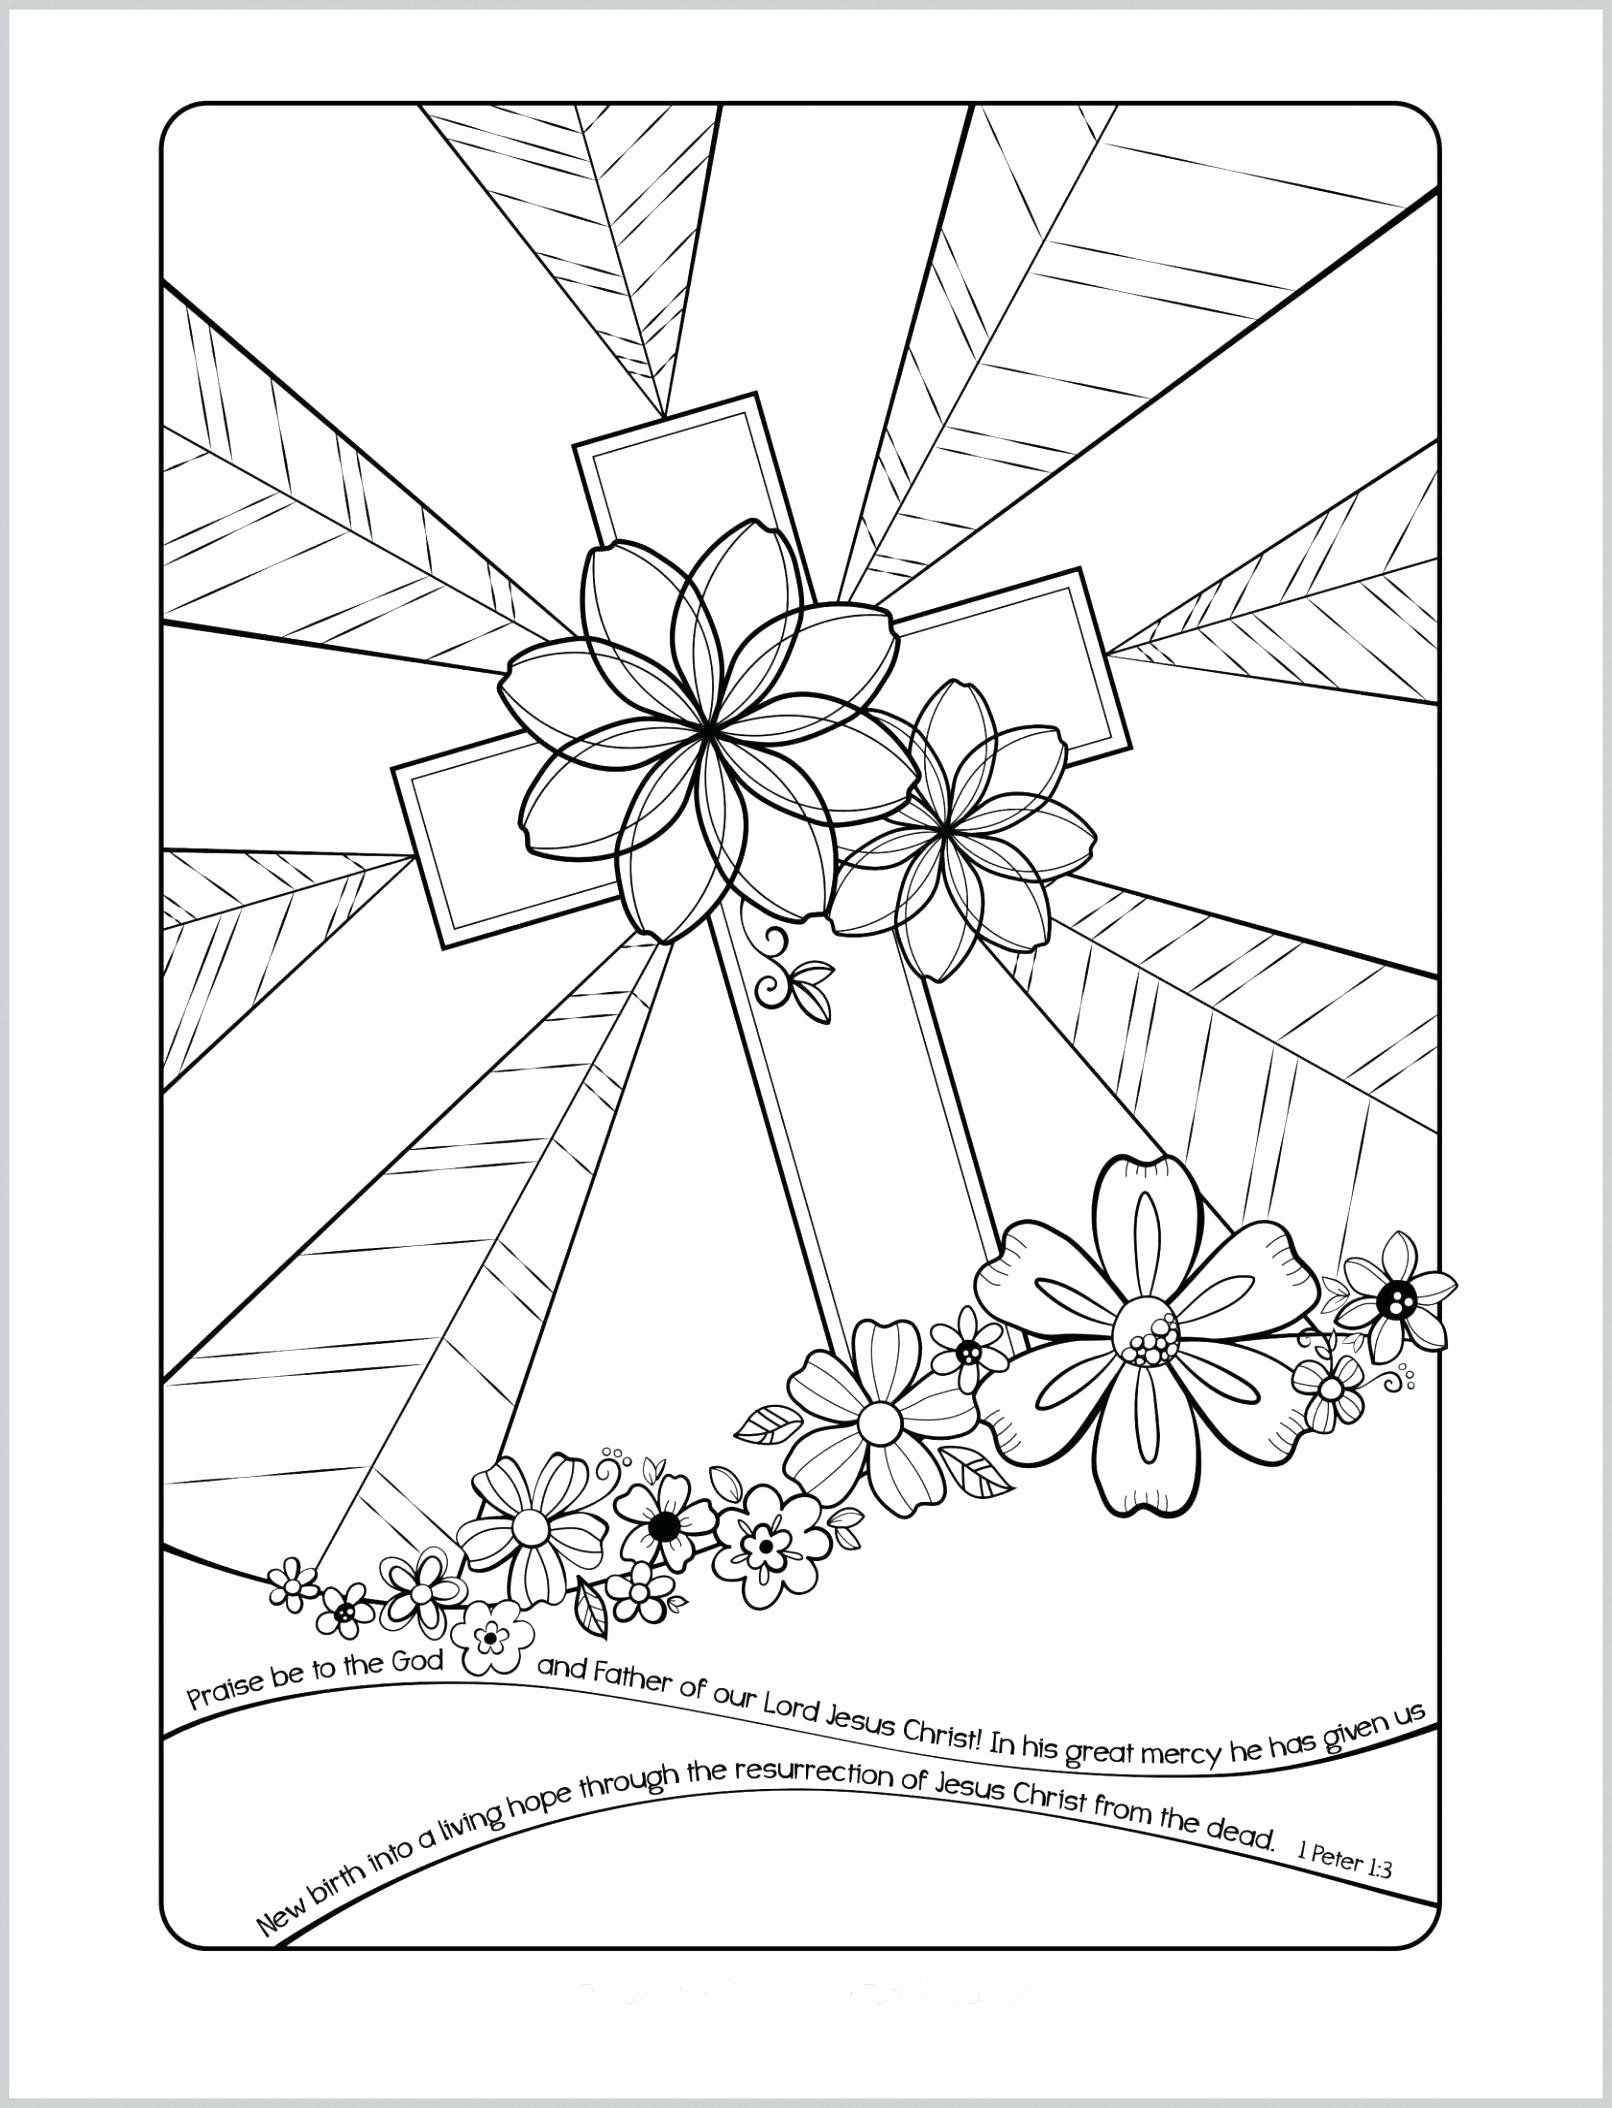 Presidents Day Coloring Sheet Luxury Of Word Search Coloring Pages To Print Bible Coloring Pages Cross Coloring Page Christian Coloring